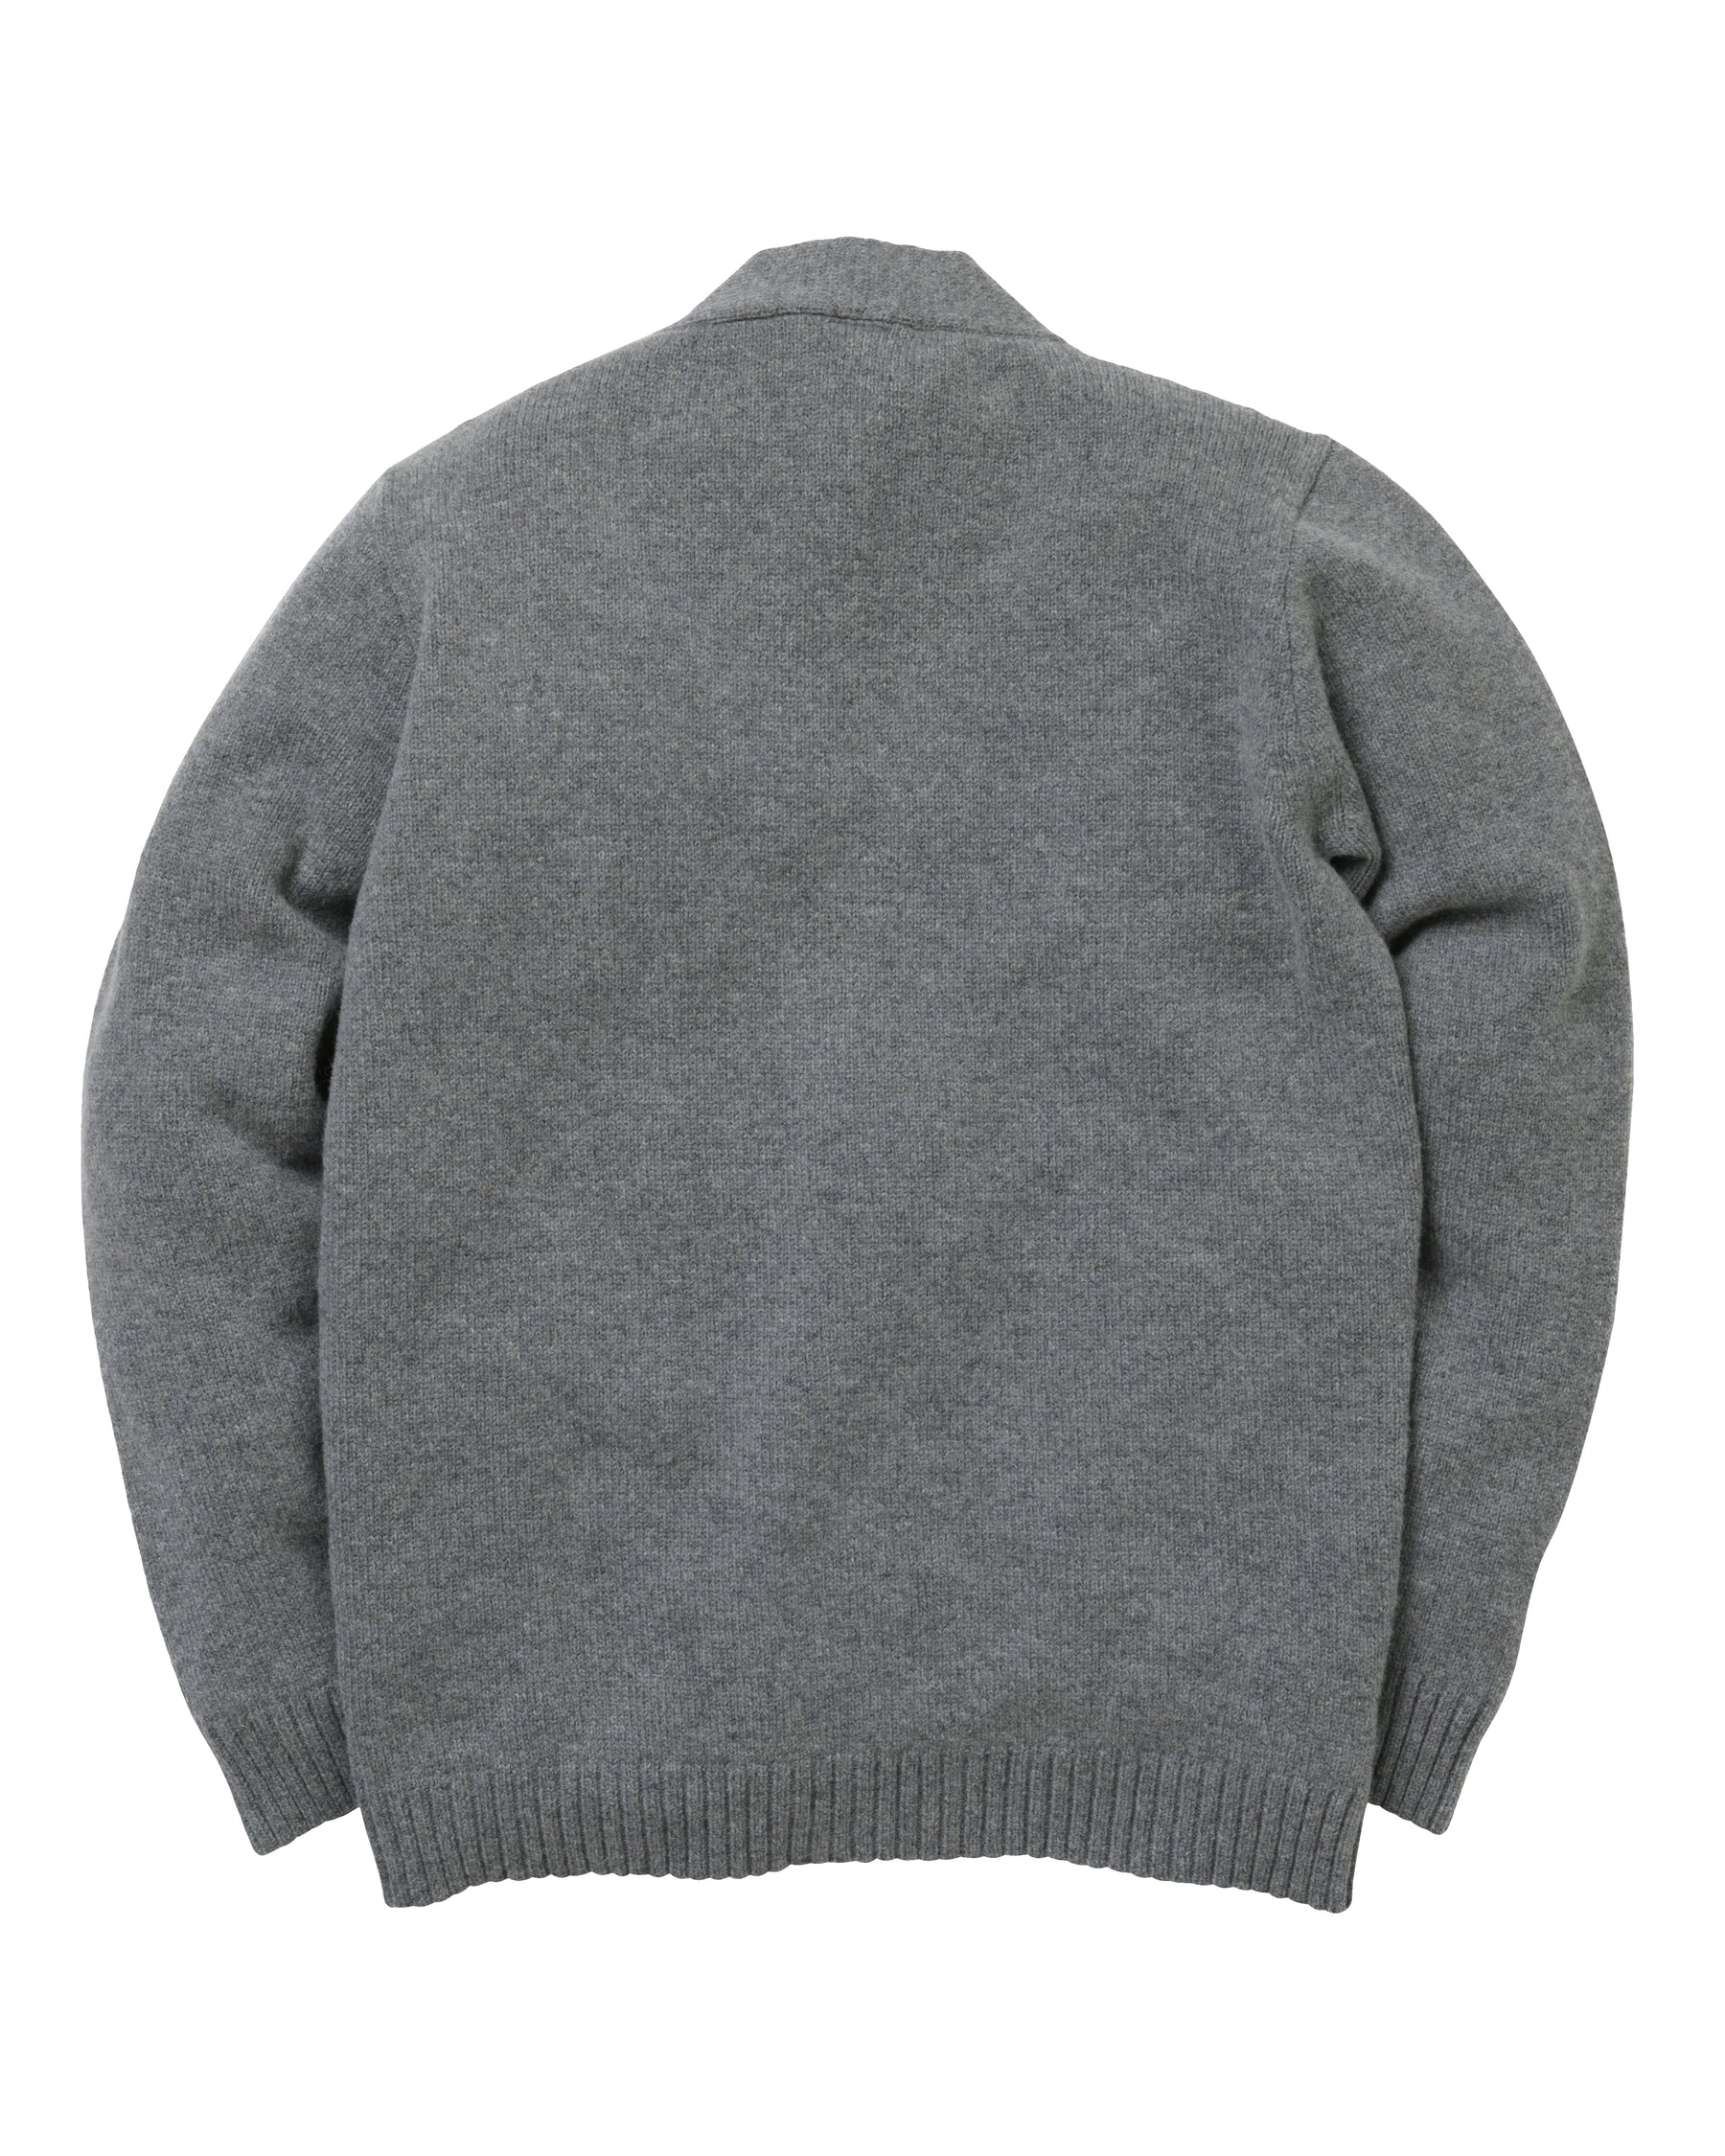 Cardigan Lambswool • Grey